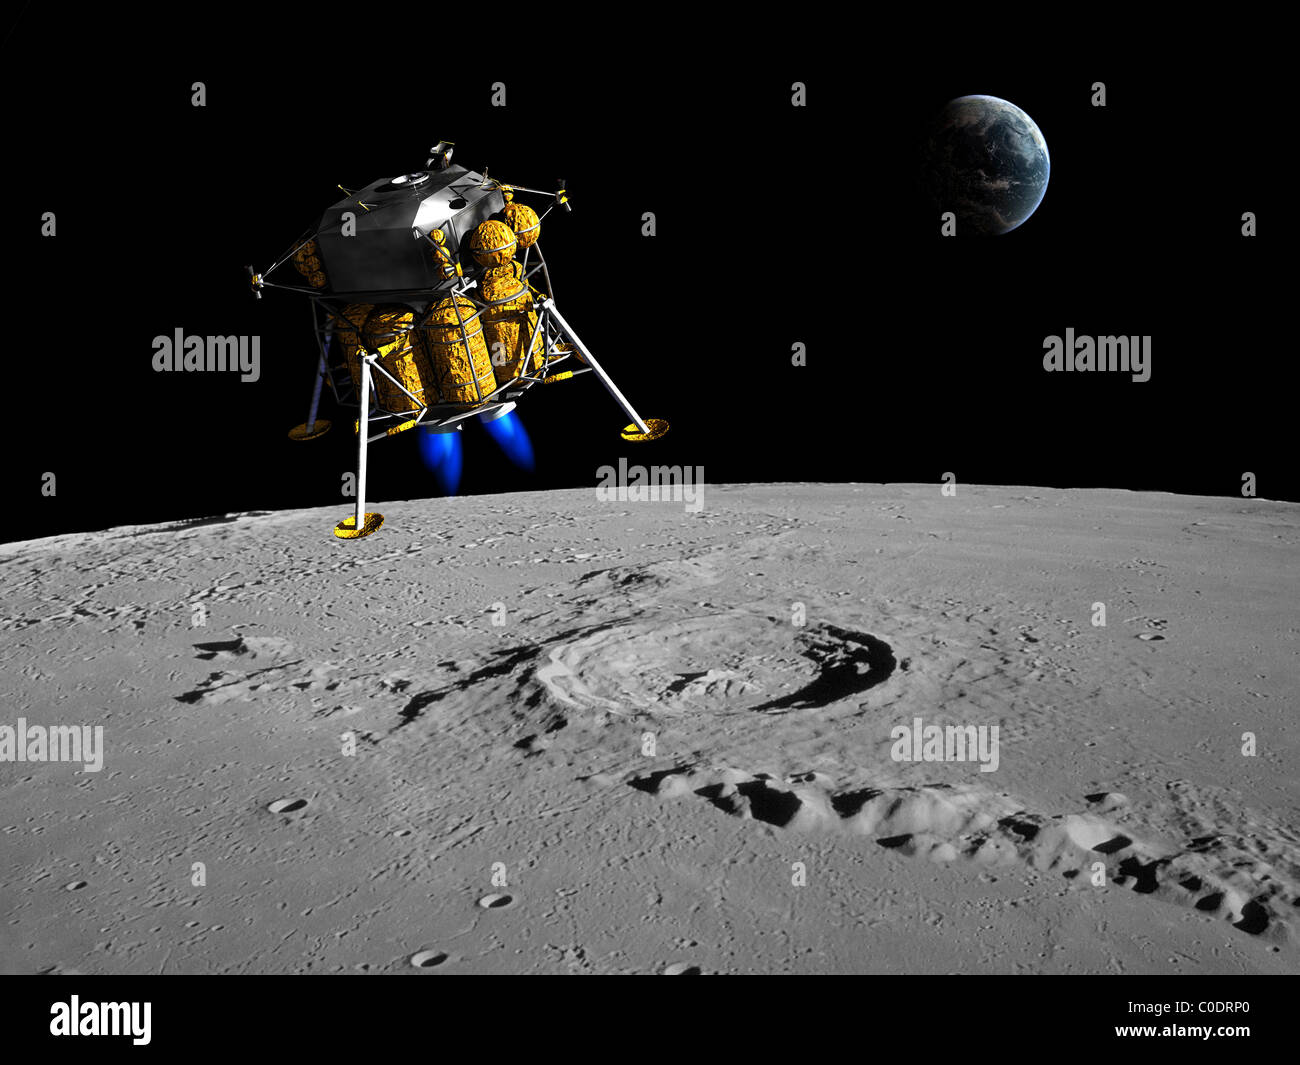 A lunar lander begins its descent to the moon's surface from an altitude of 40,000 feet. - Stock Image